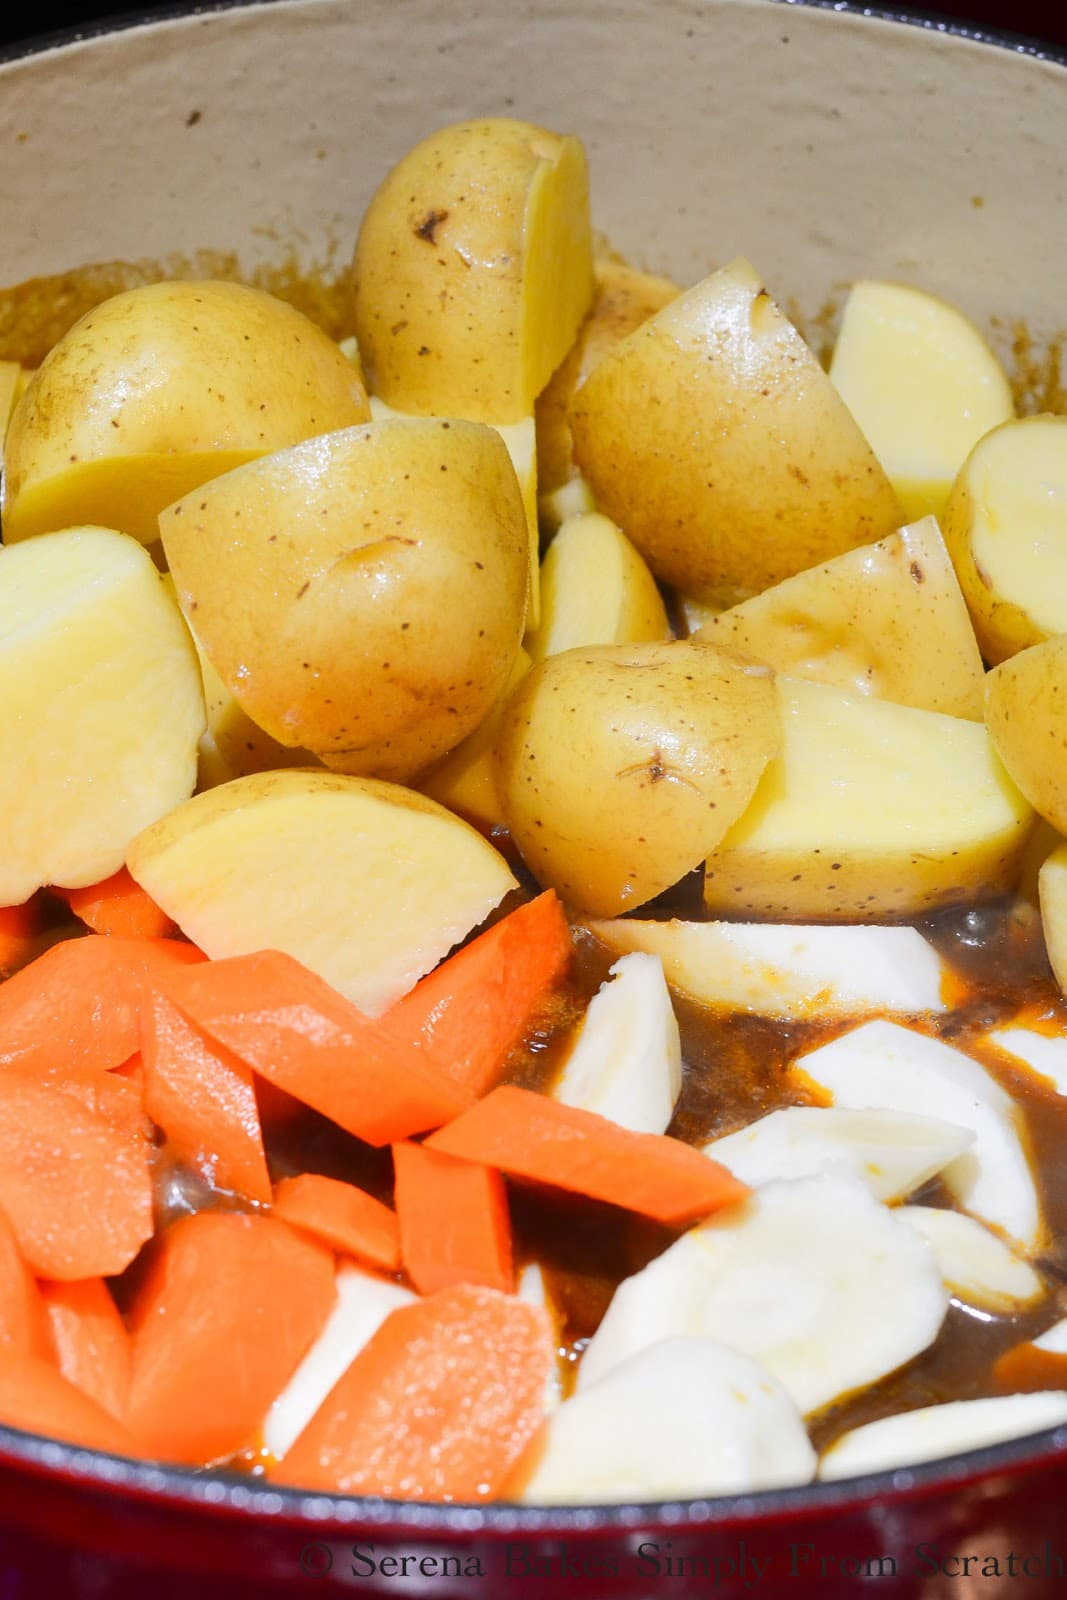 Carrots, yukon gold potatoes, and parsnips added to Guiness Beef Stew recipe.